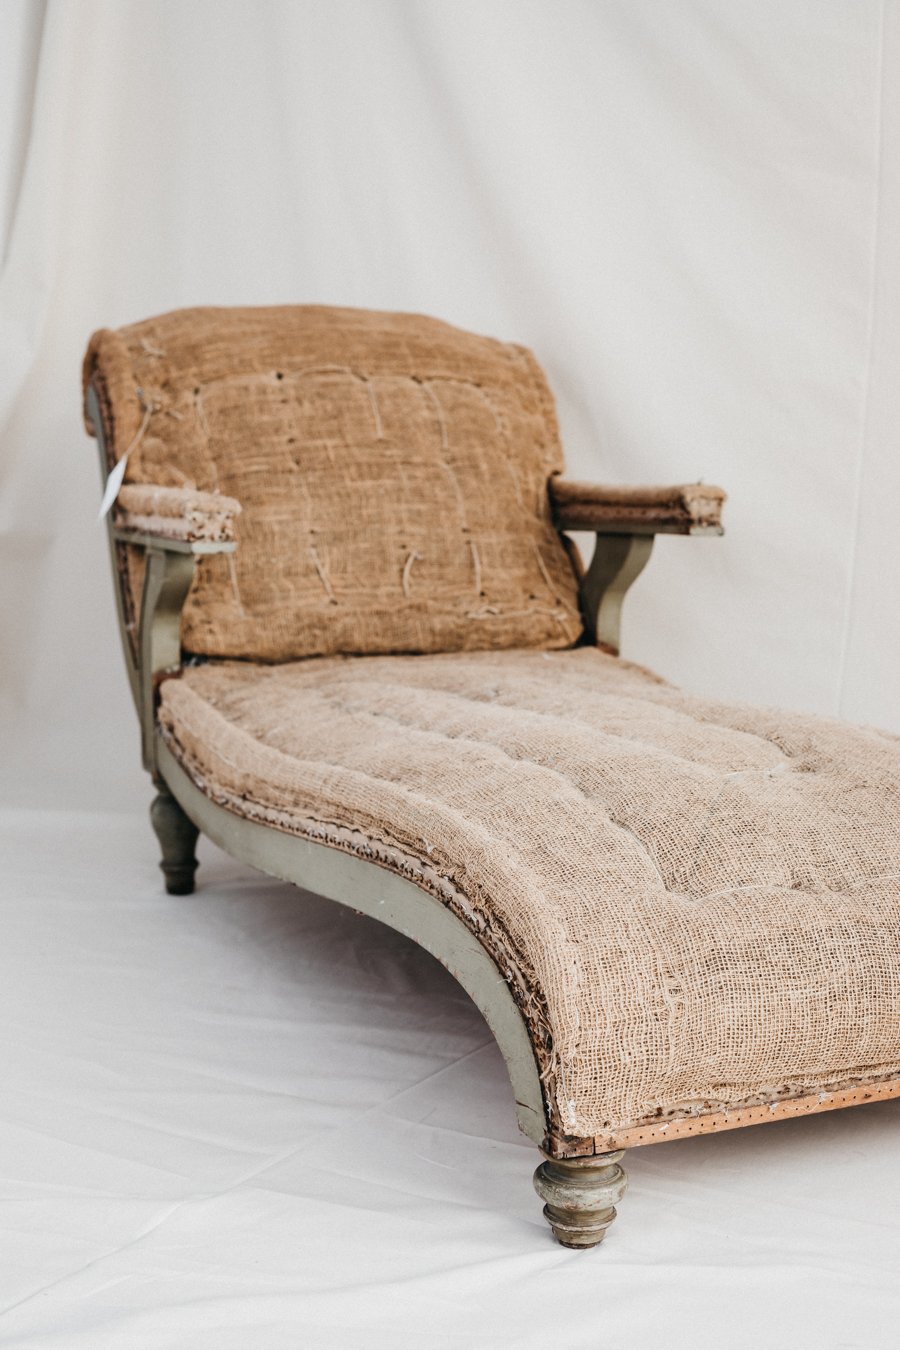 SOLD · Chaise longue